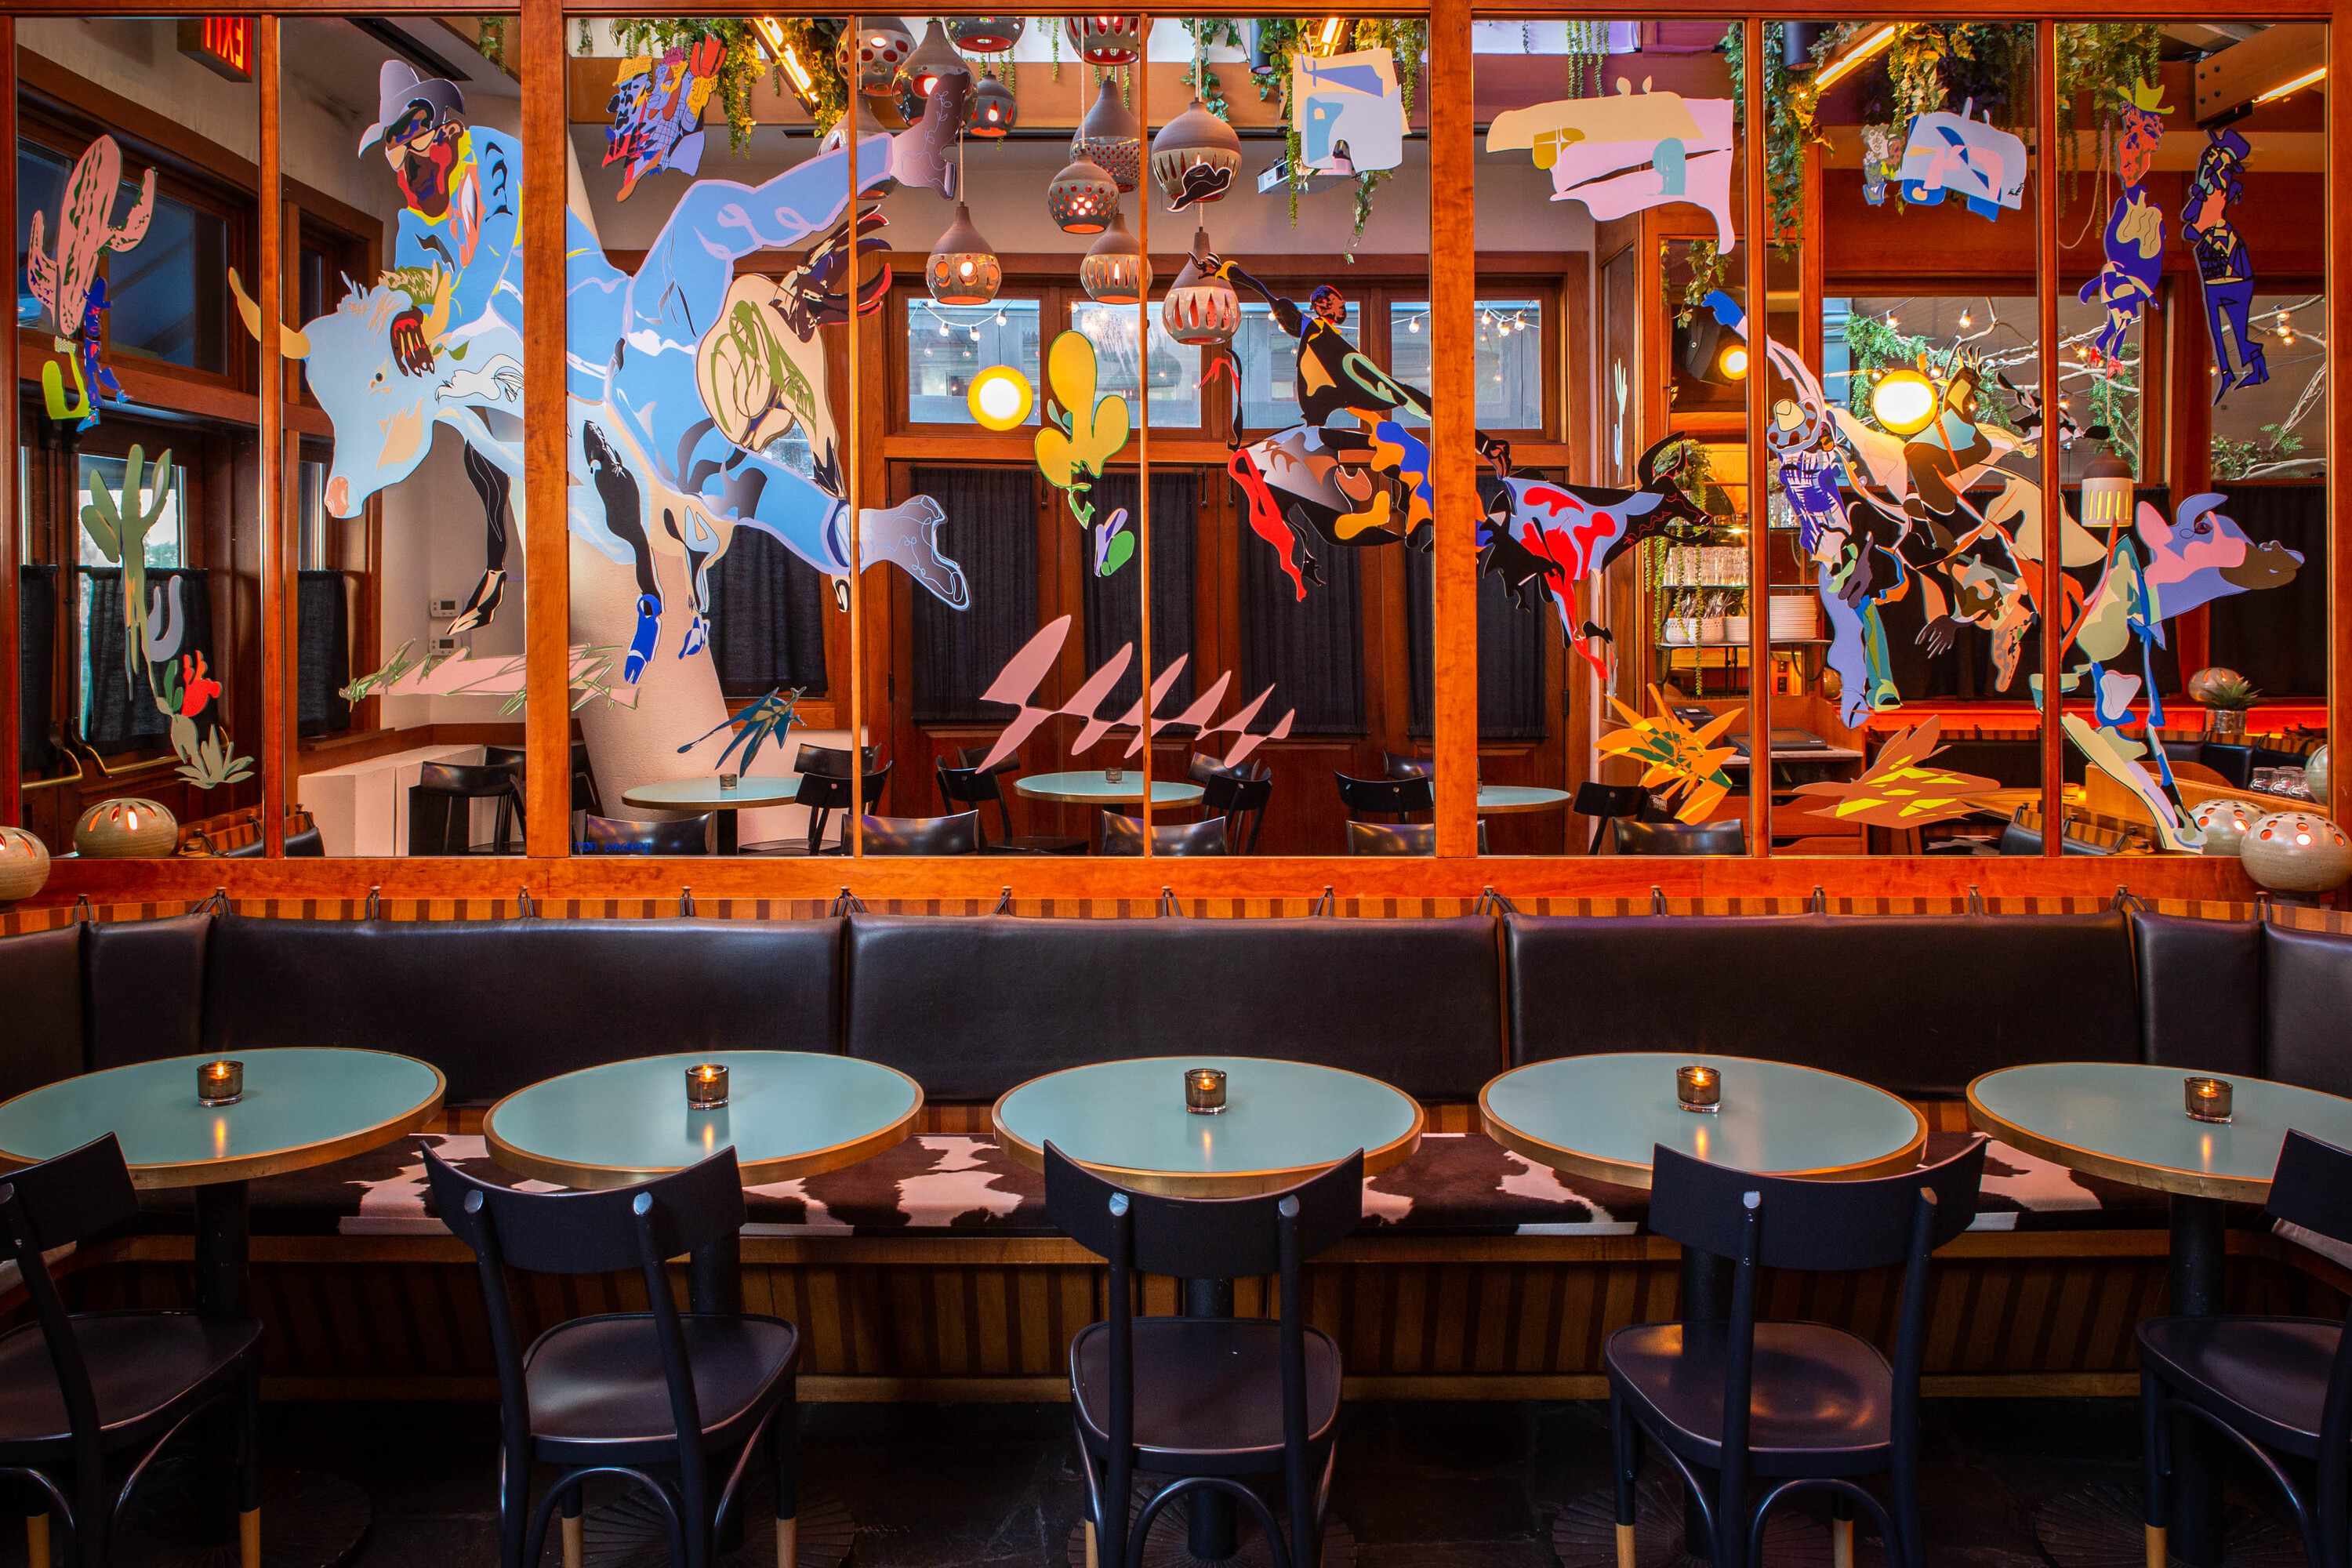 The best East Village bars you've got to try